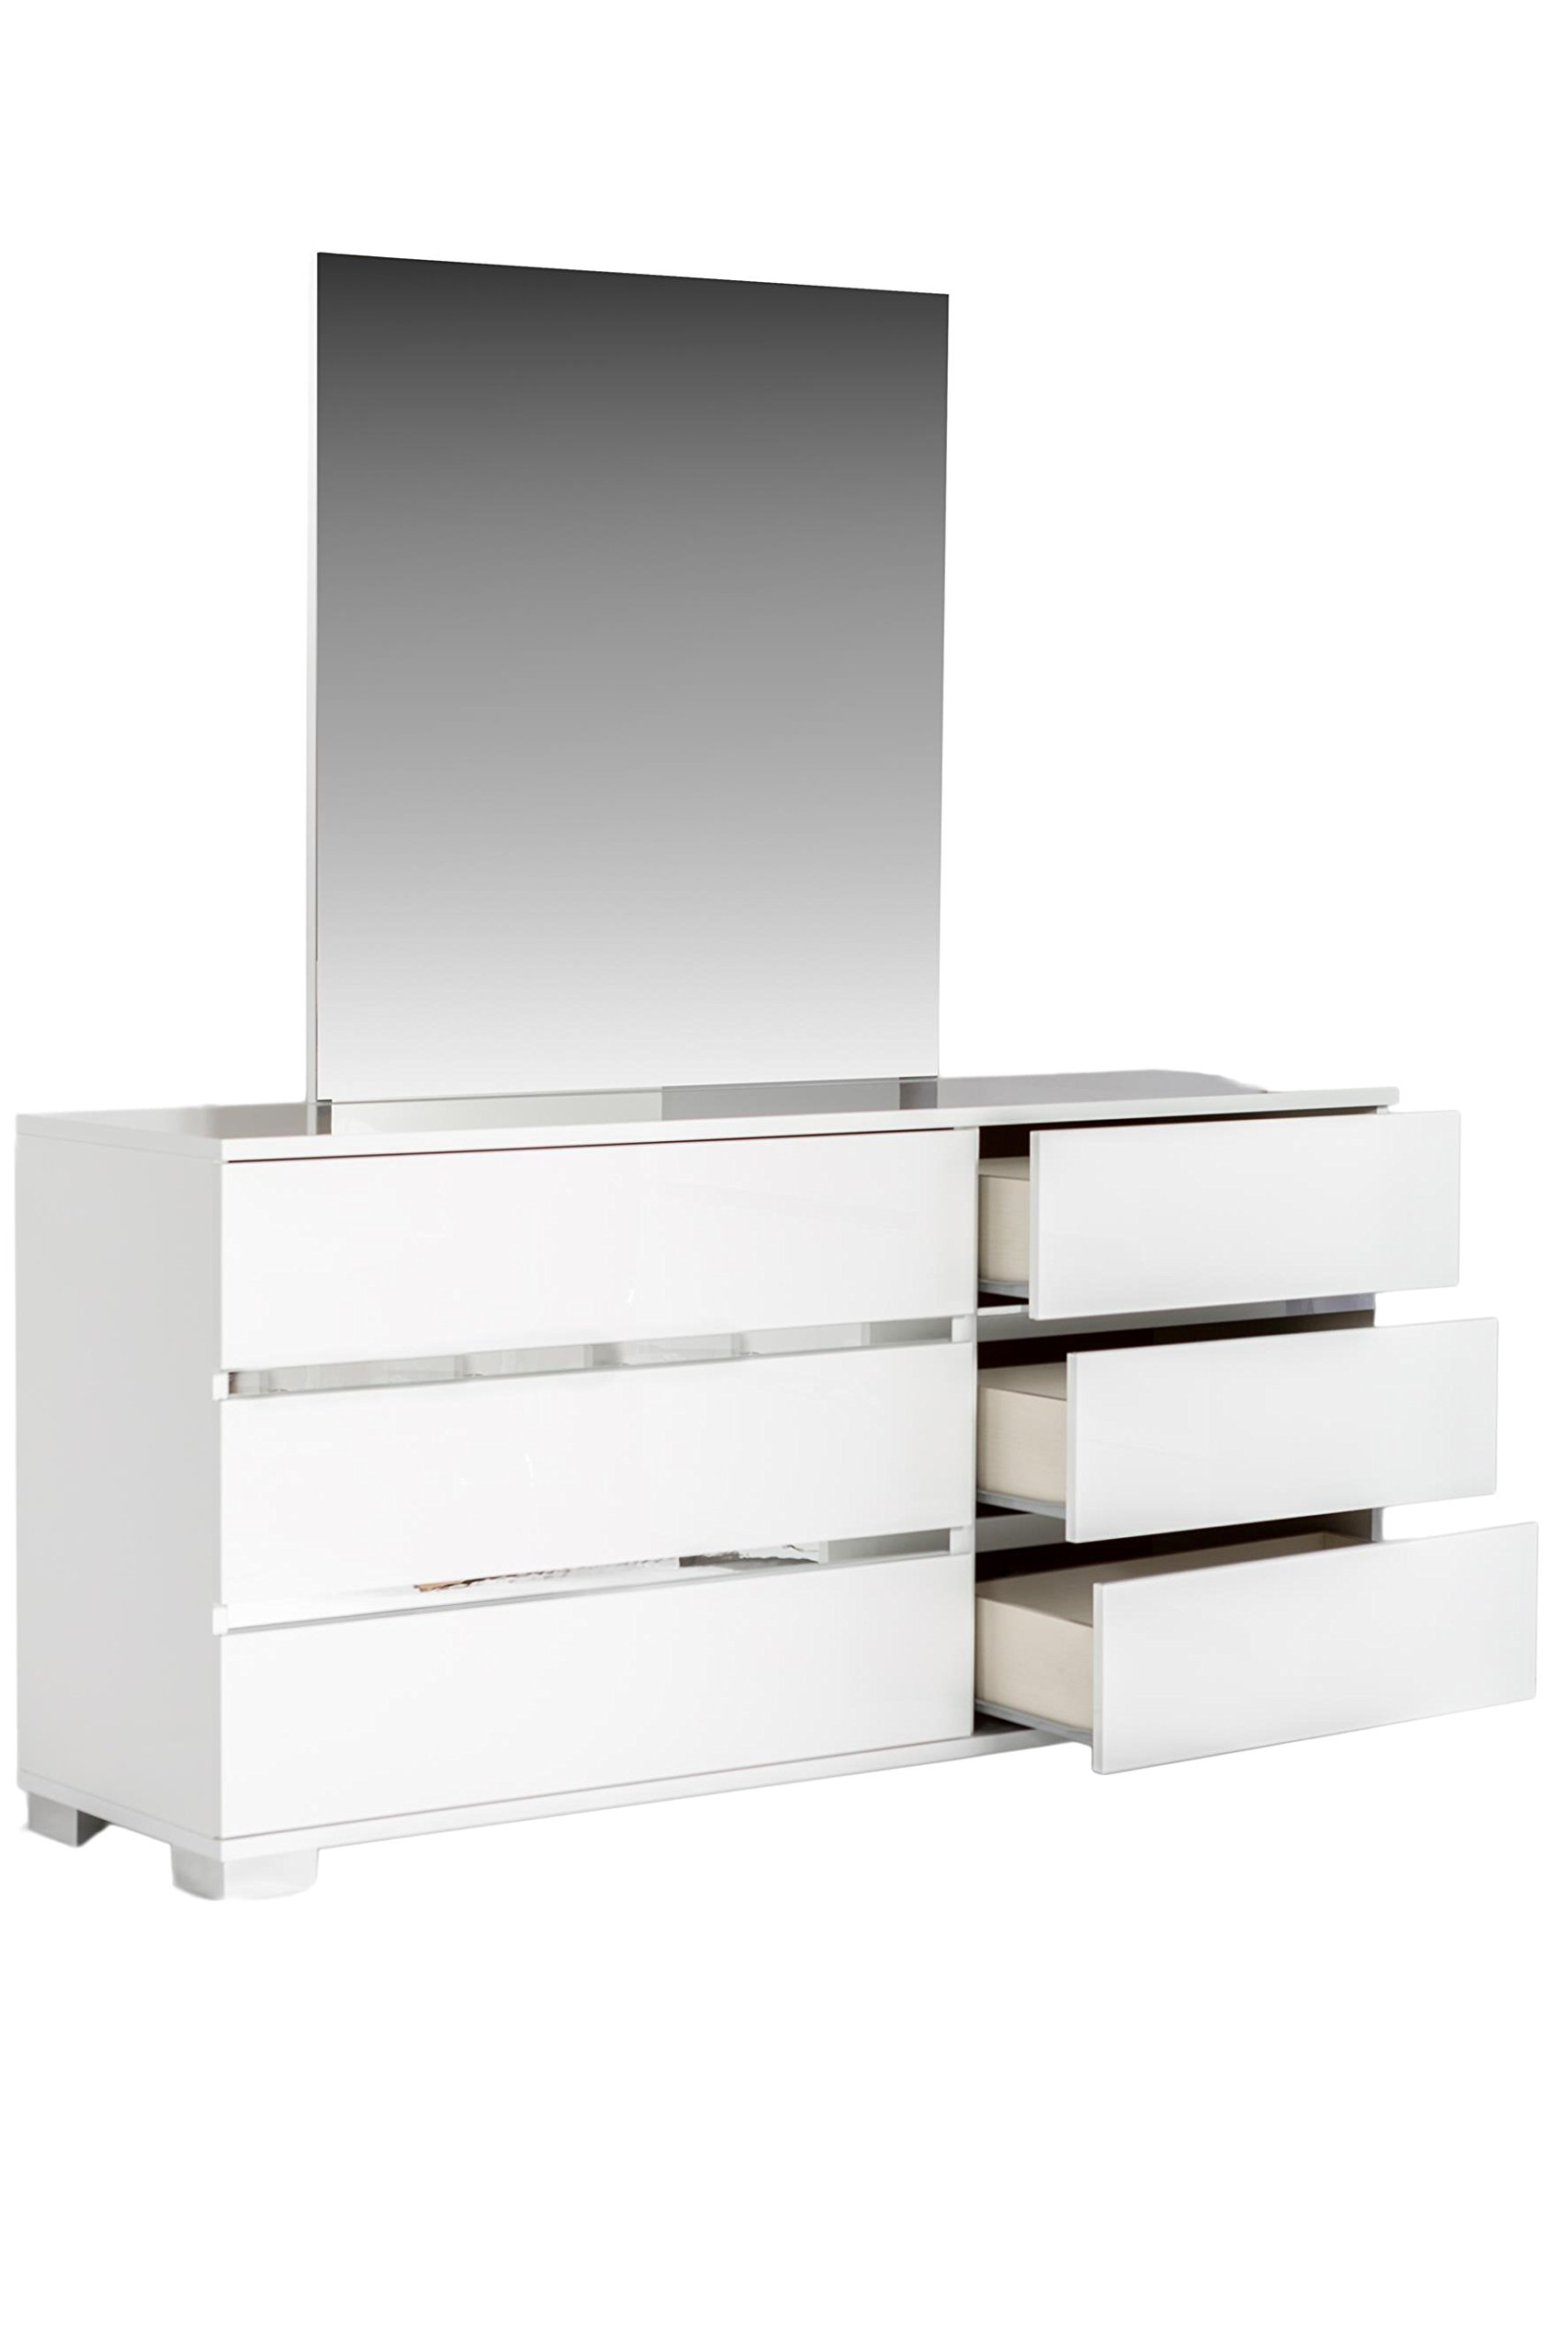 At Home Skuathnw Athens White 2D Nightstand